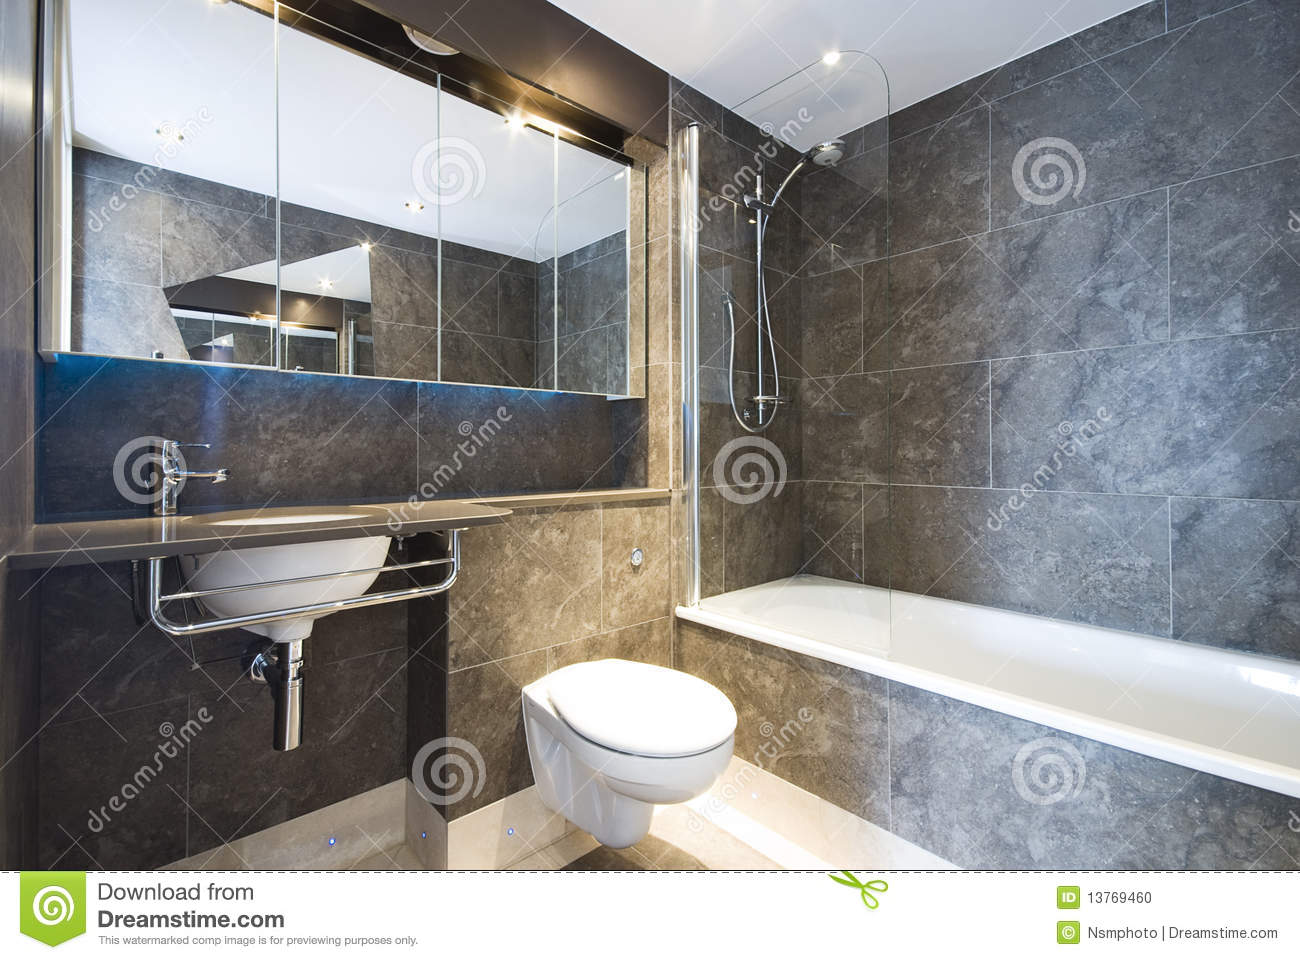 Baños Modernos De Marmol:Brown Marble Tile Bathroom